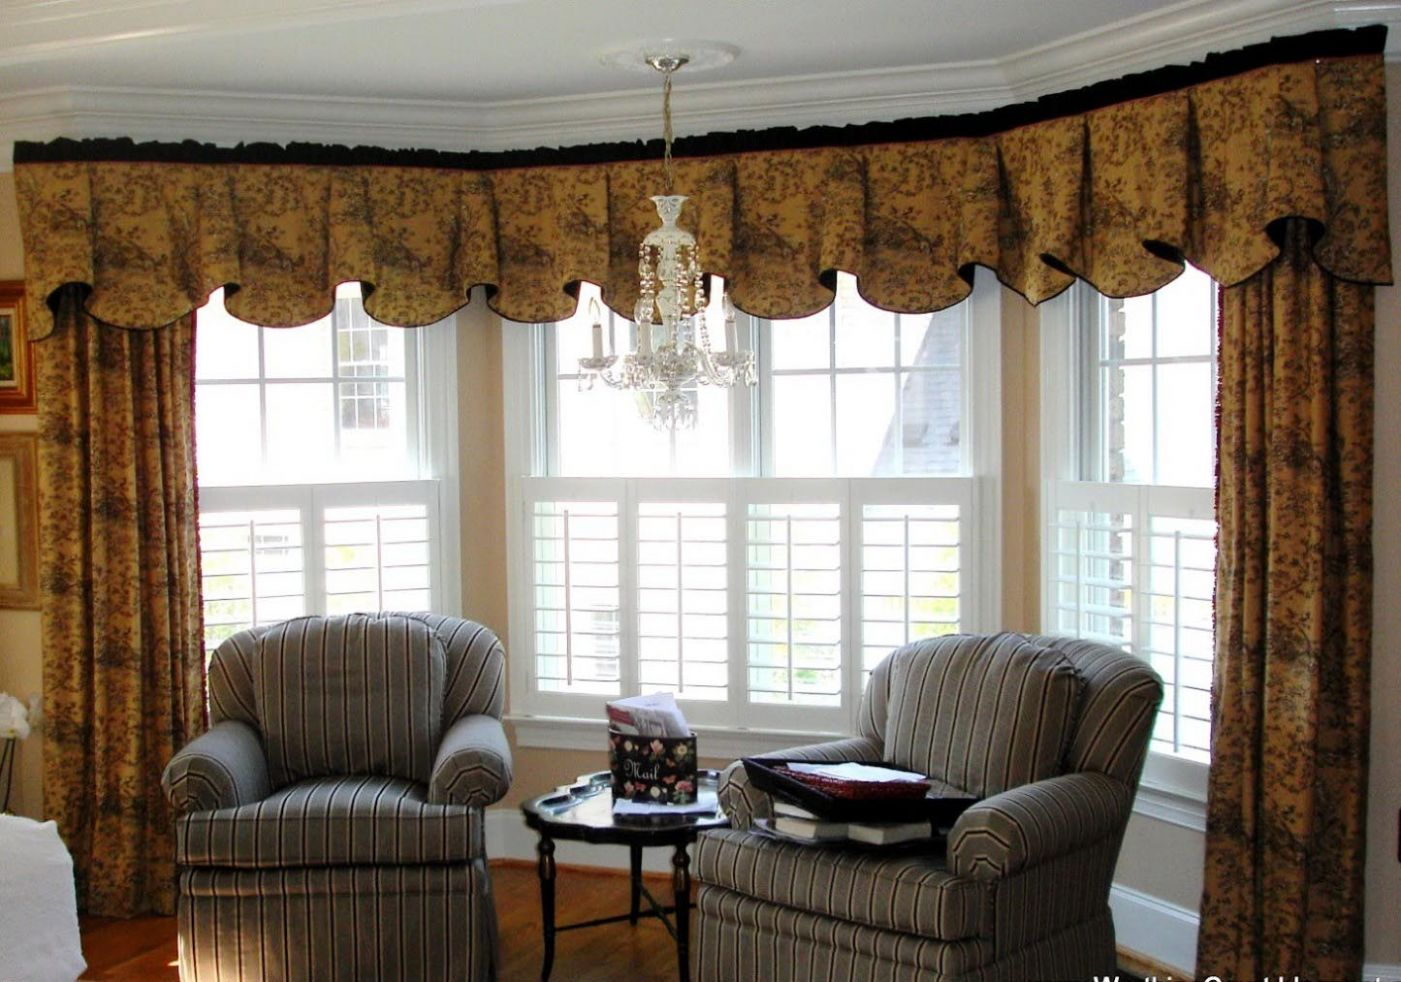 Valance Curtains For Living Room | Window Treatments Design Ideas